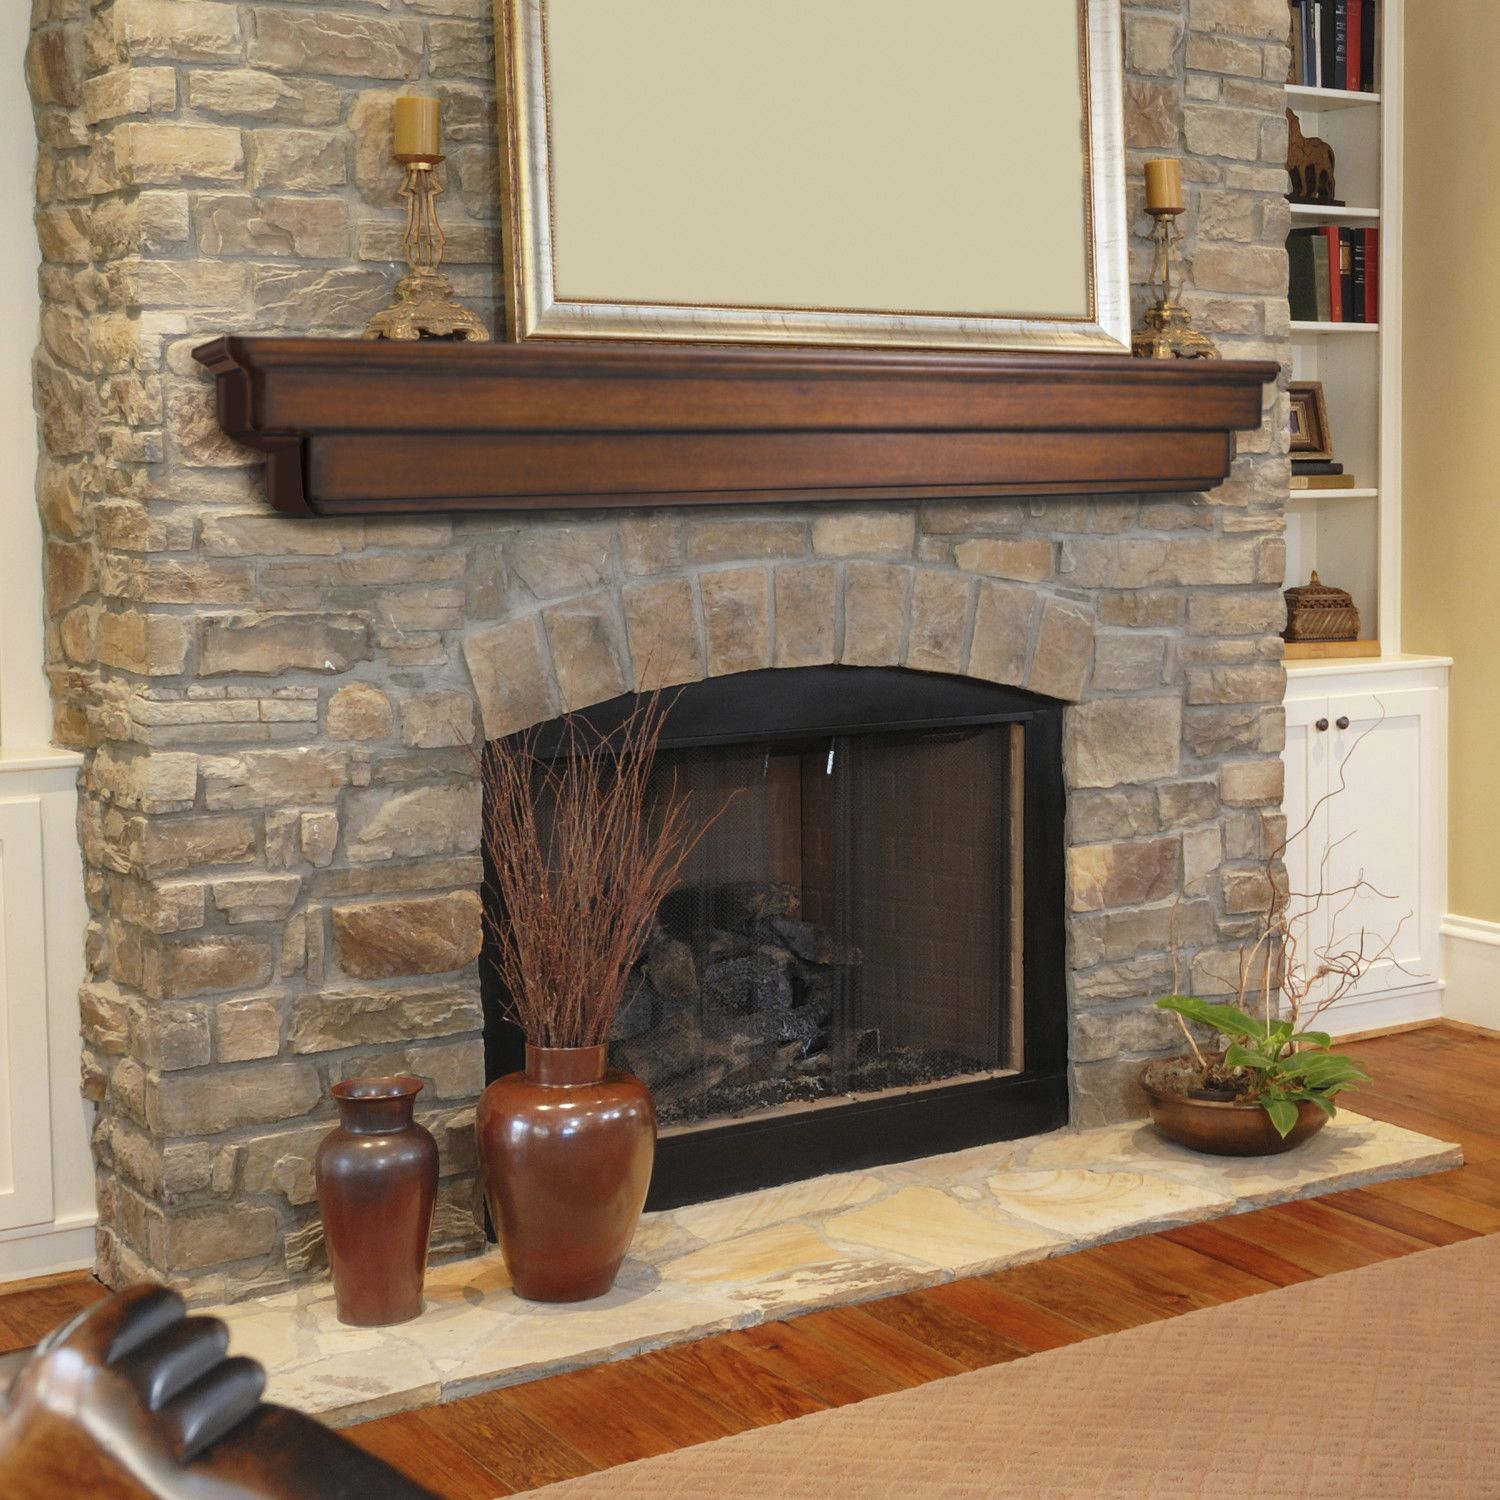 Mantle Without Fireplace 25 Stunning Fireplace Ideas To Steal No Mantel Fireplace